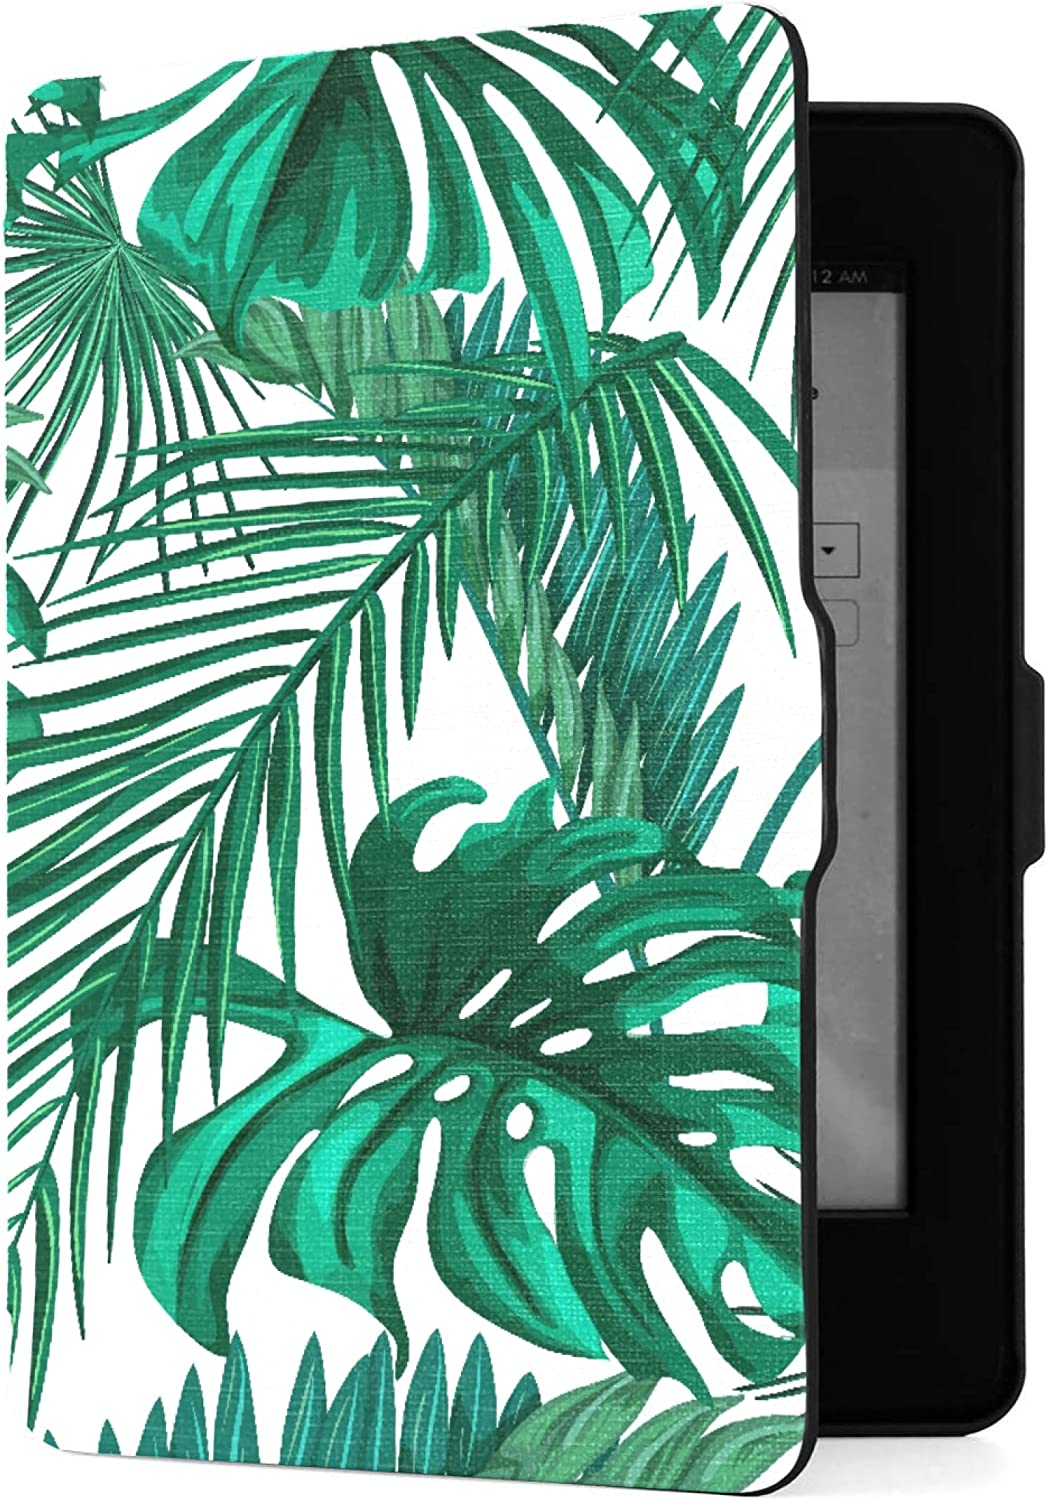 Case for Kindle San Jose Mall Paperwhite 1 2 Summer 3 Mail order cheap Tropical Tree Generation